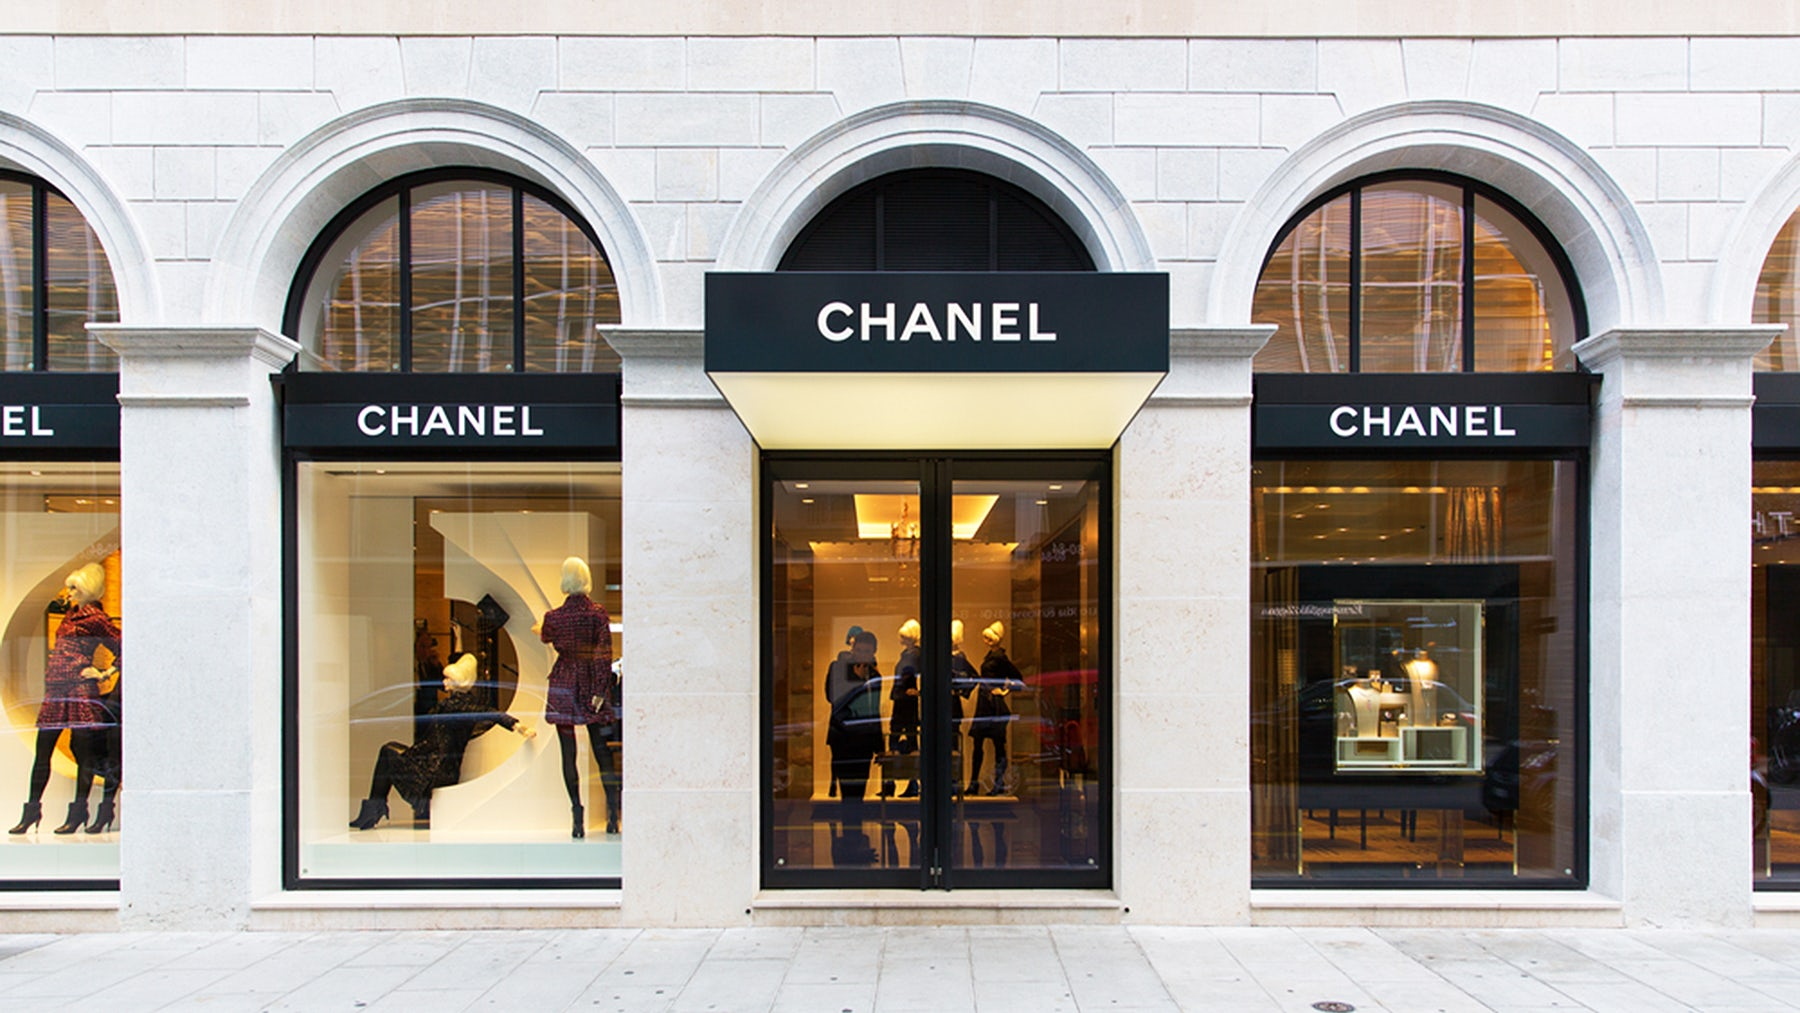 Chanel store | Source: Shutterstock